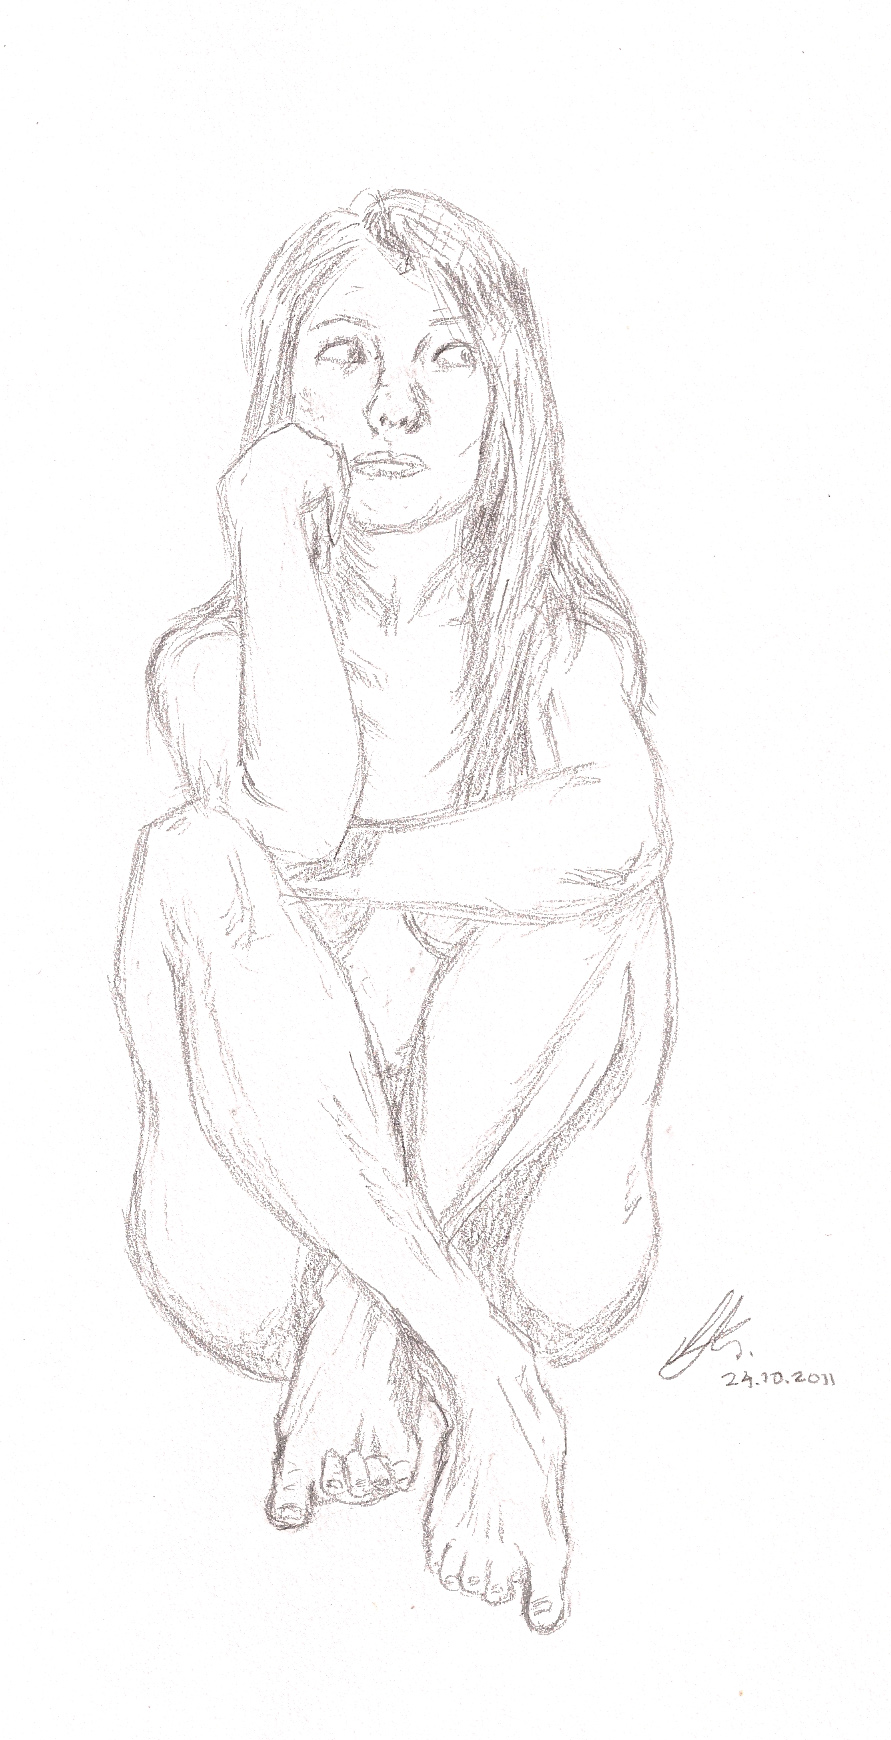 [Image: woman_sketch_17_by_rhefleks-d4lqgv3.jpg]